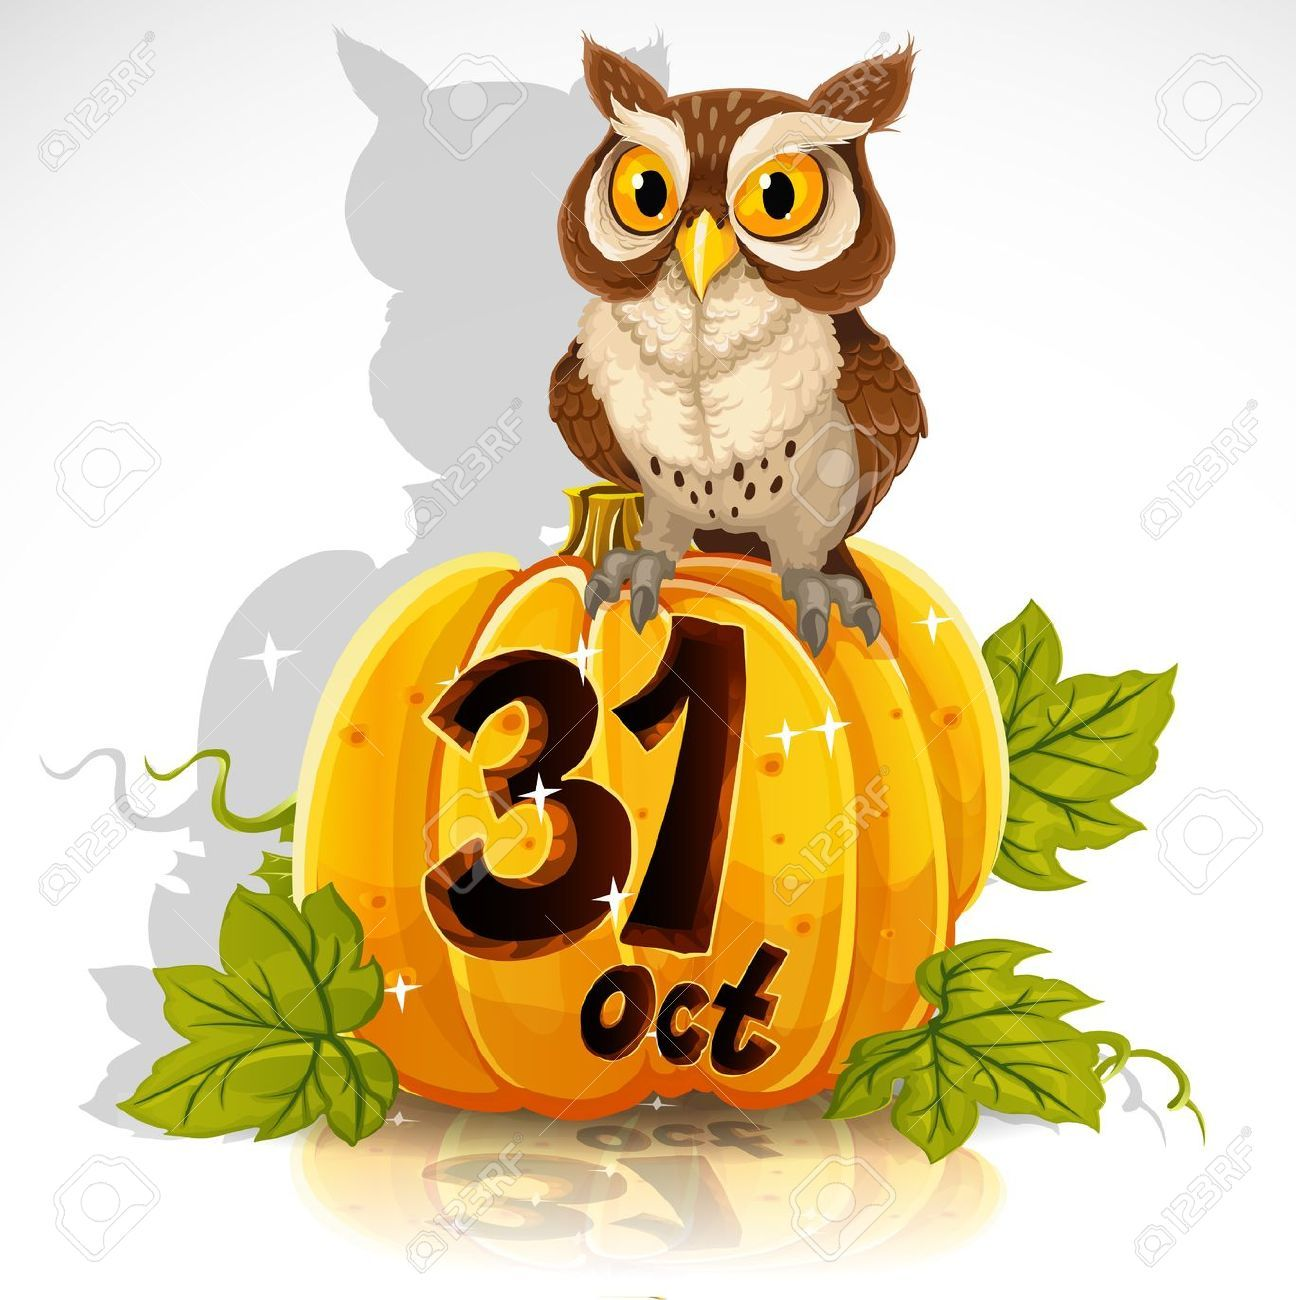 15743918-Wise-owl-sit-on-a-pumpkin-Halloween-Party-October-31 ...